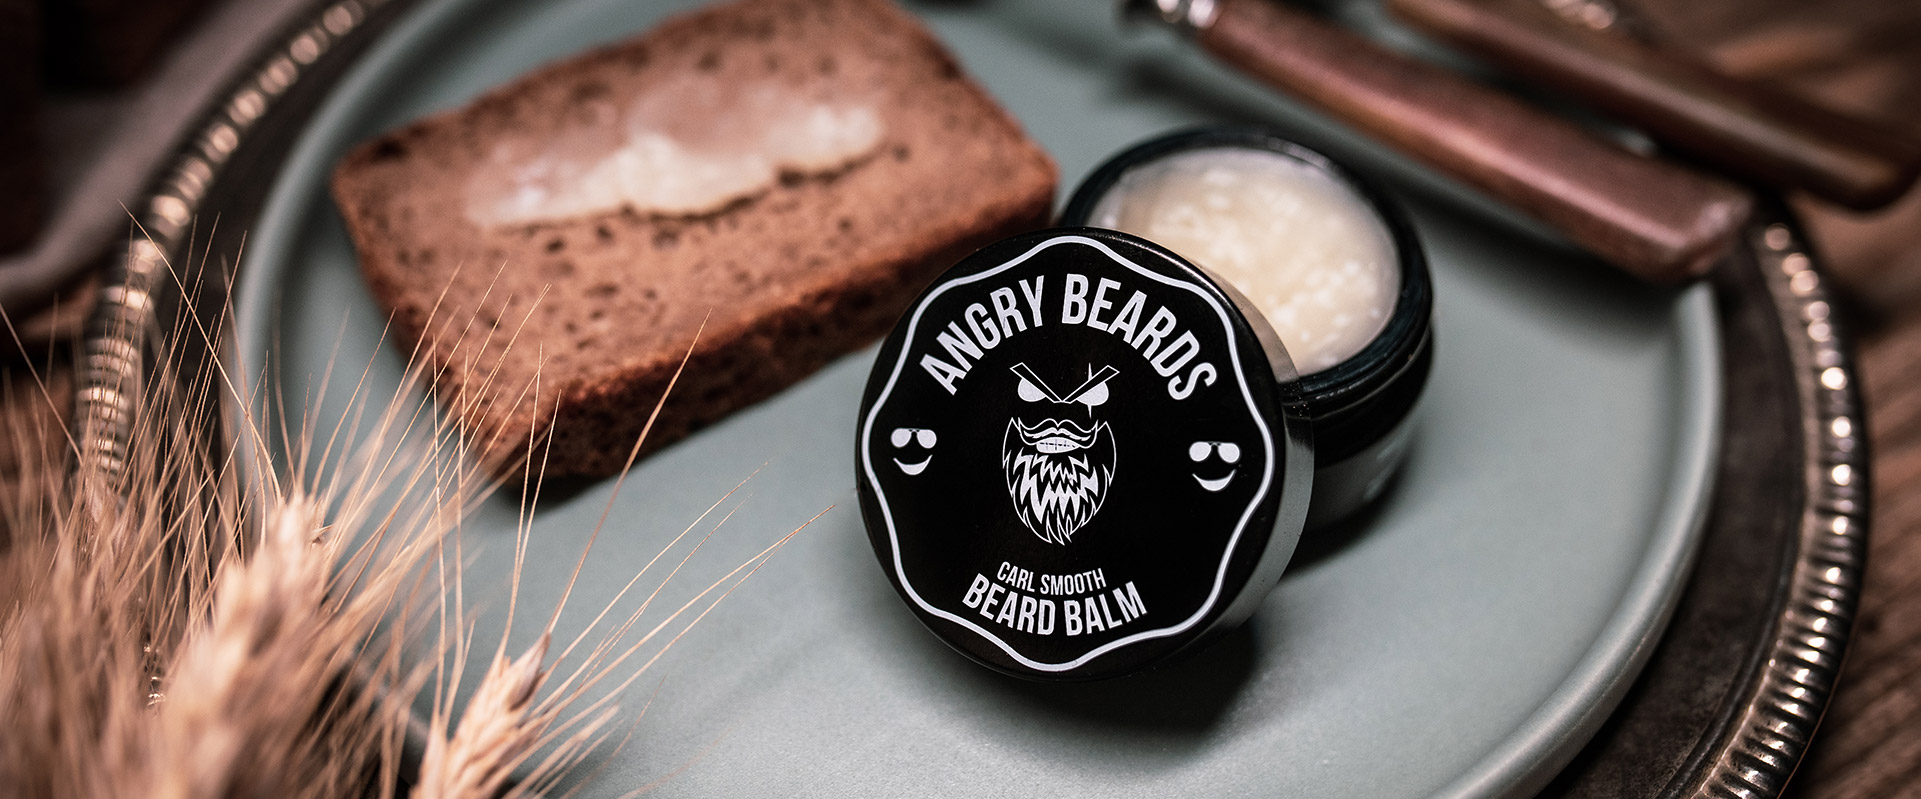 Angry beards beard balm balzam na vousy carl smooth obrazek